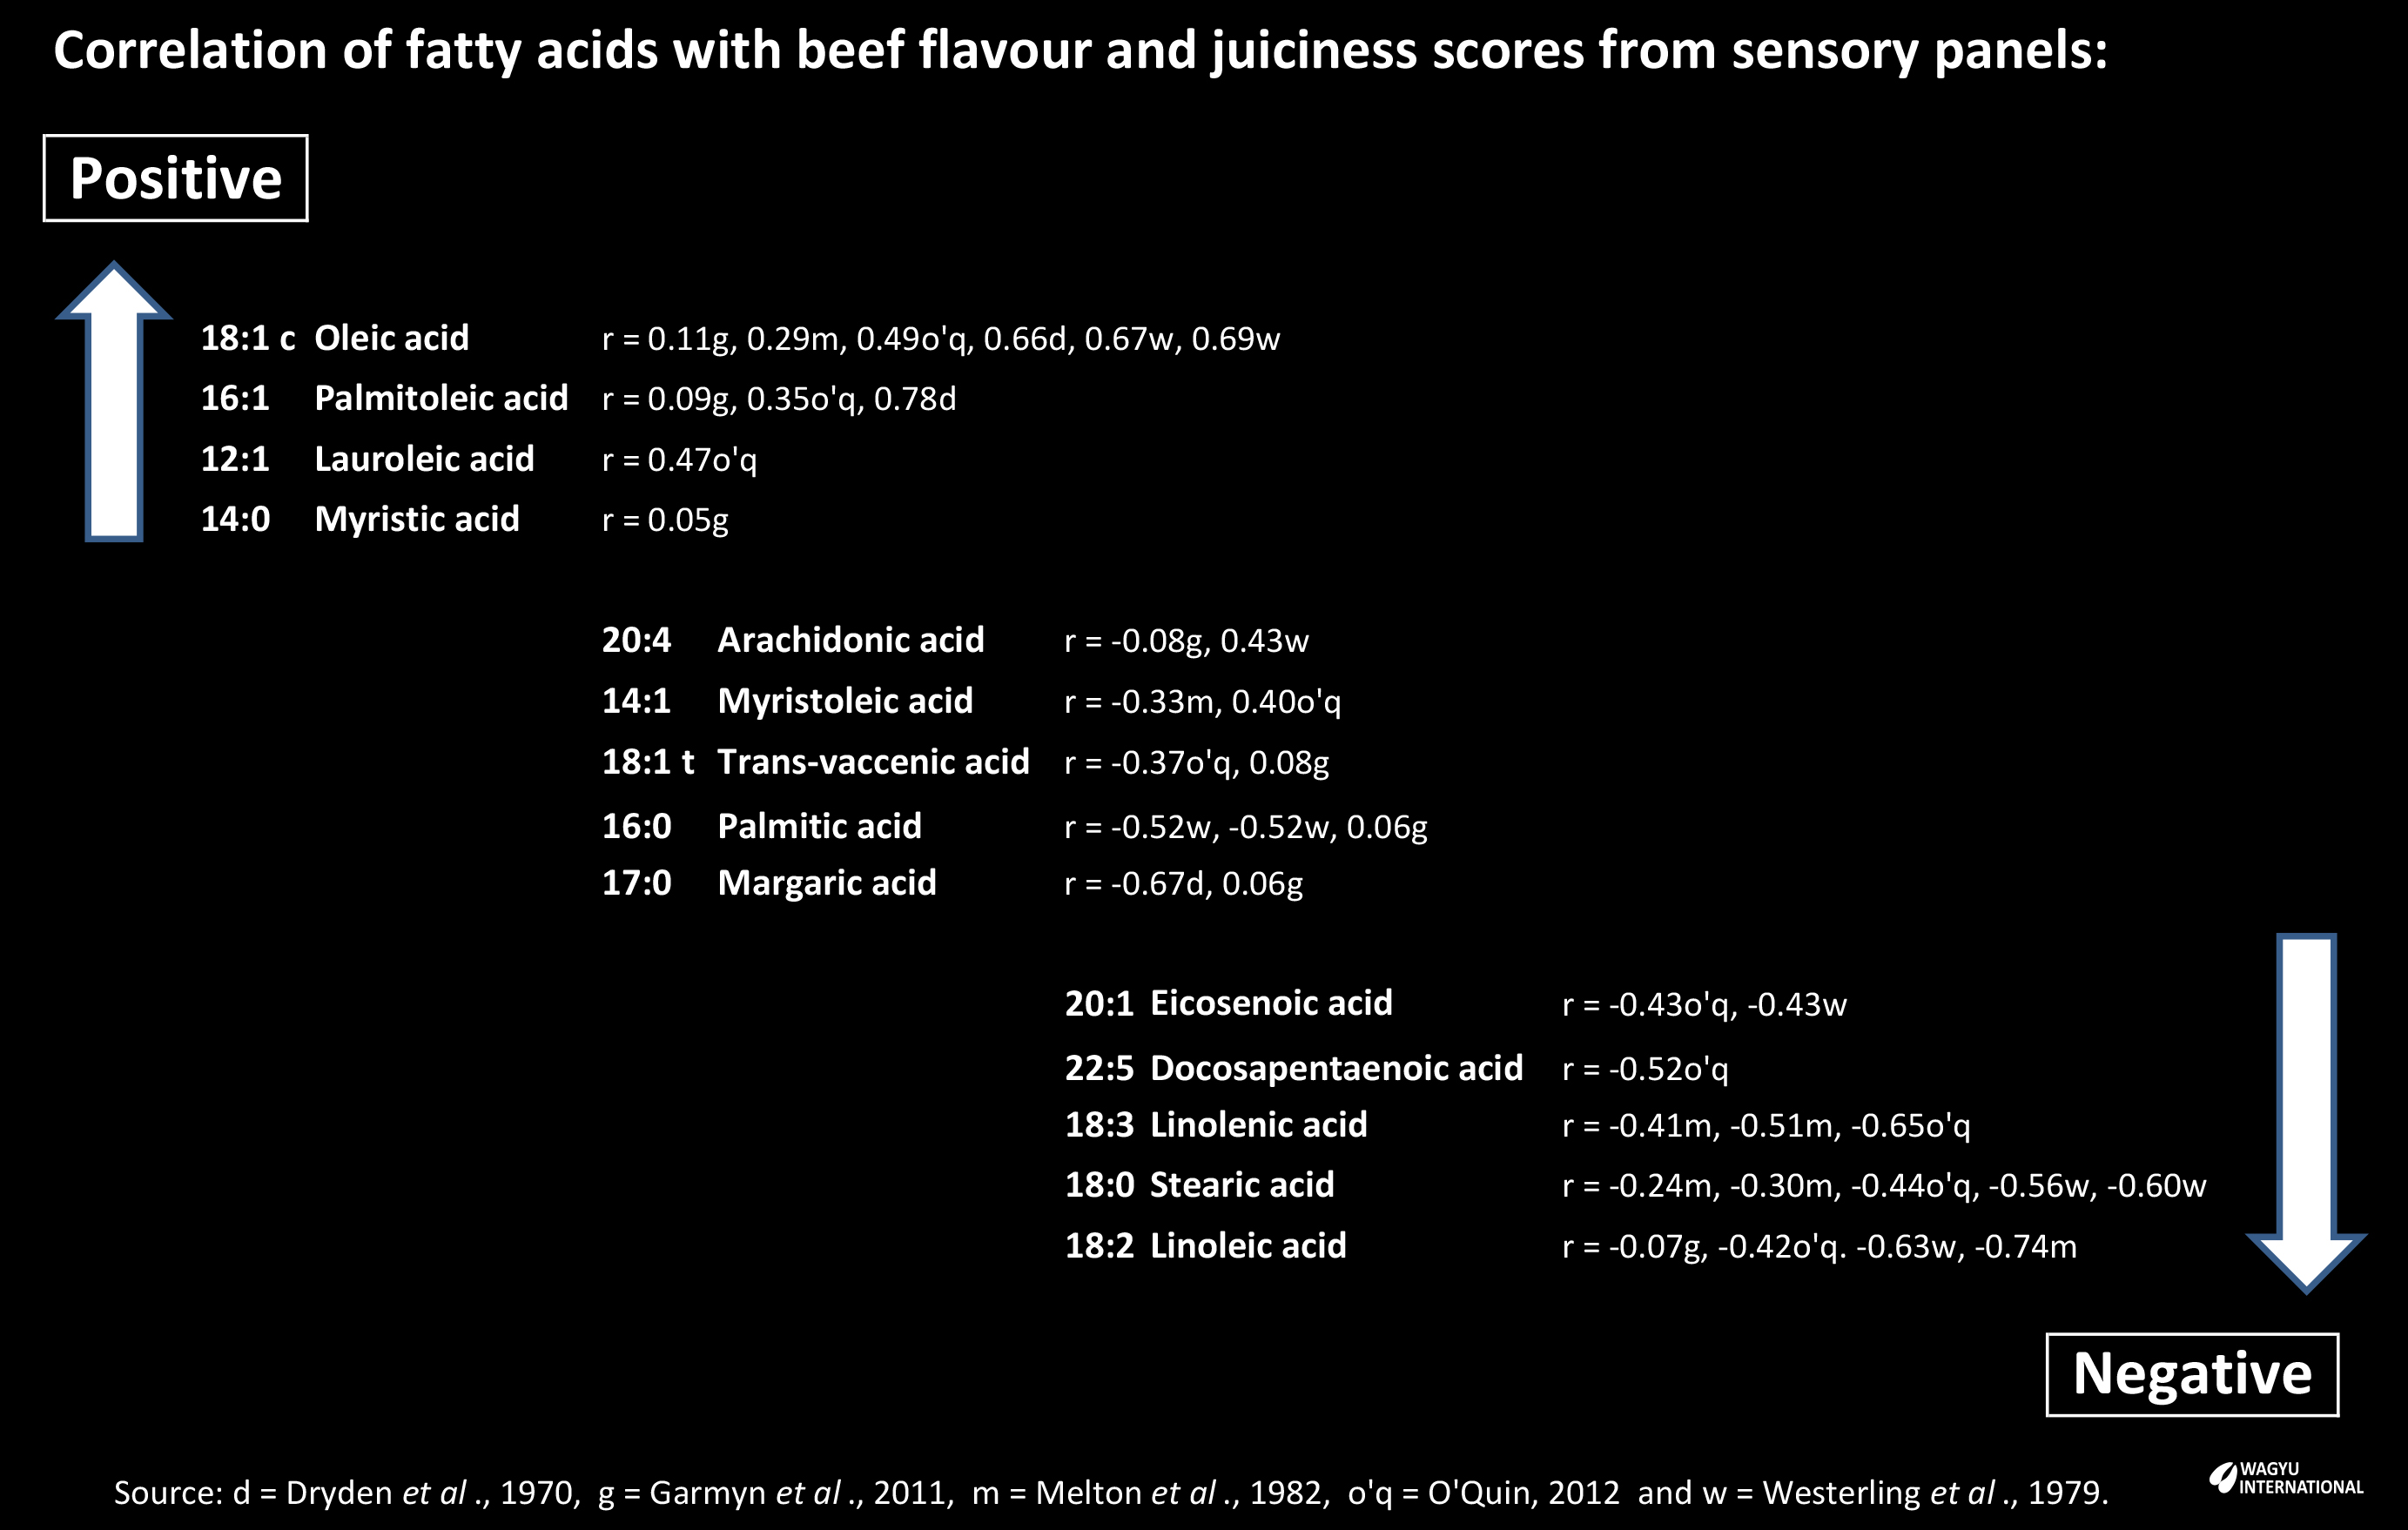 Correlation of fatty acids with beef flavour and juiciness from sensory panels